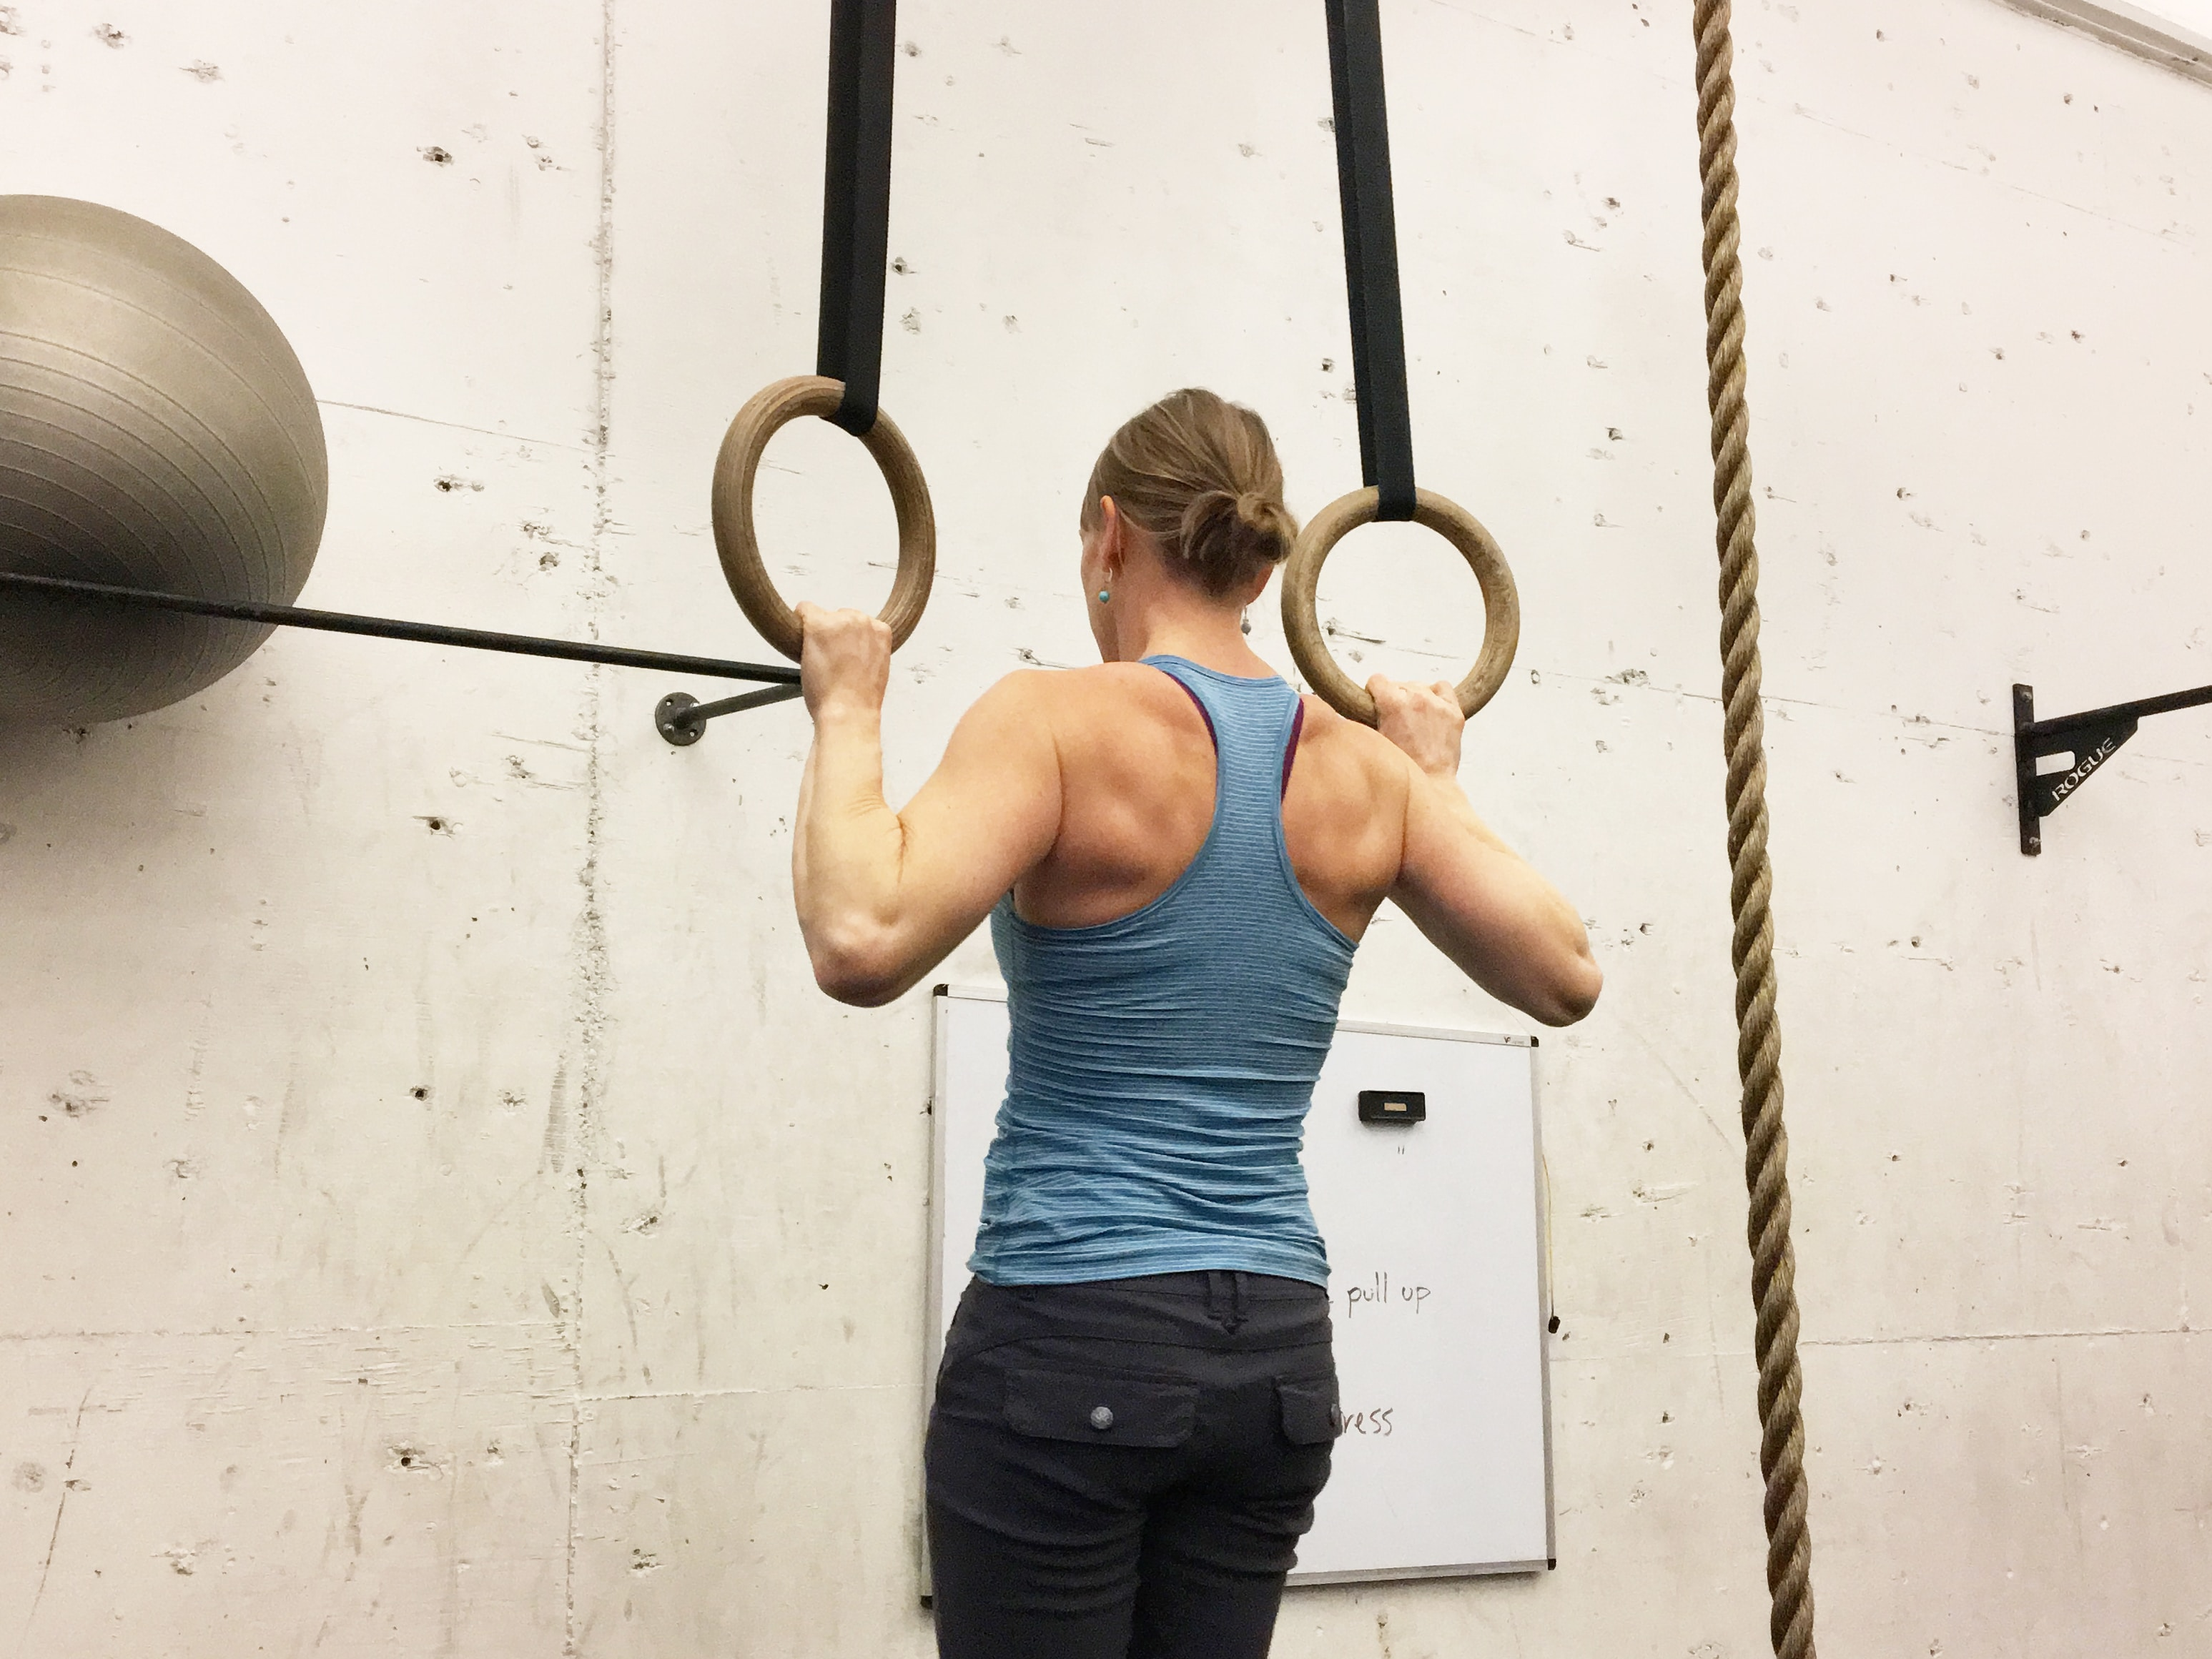 Grip strength and why it's important - SavagePT